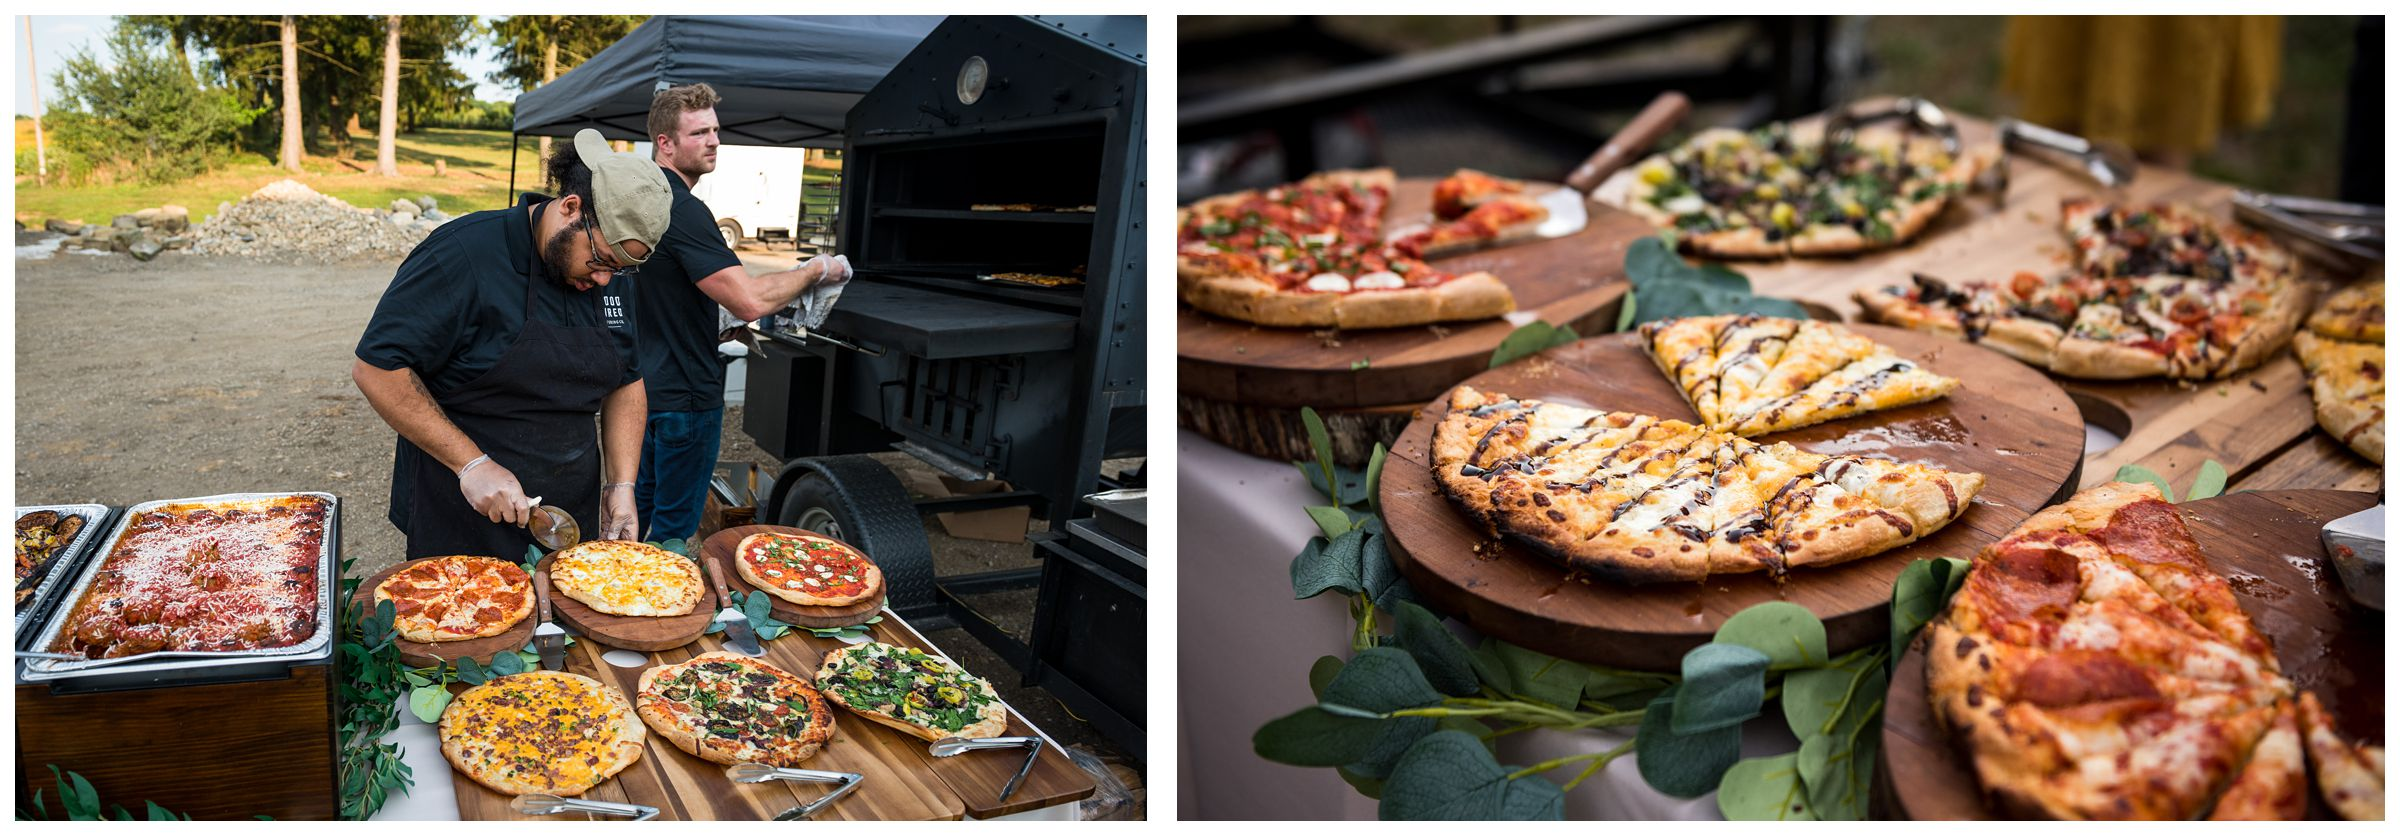 Short prowood fired pizza catering at rustic Lancaster barn wedding at family farm in central Ohio